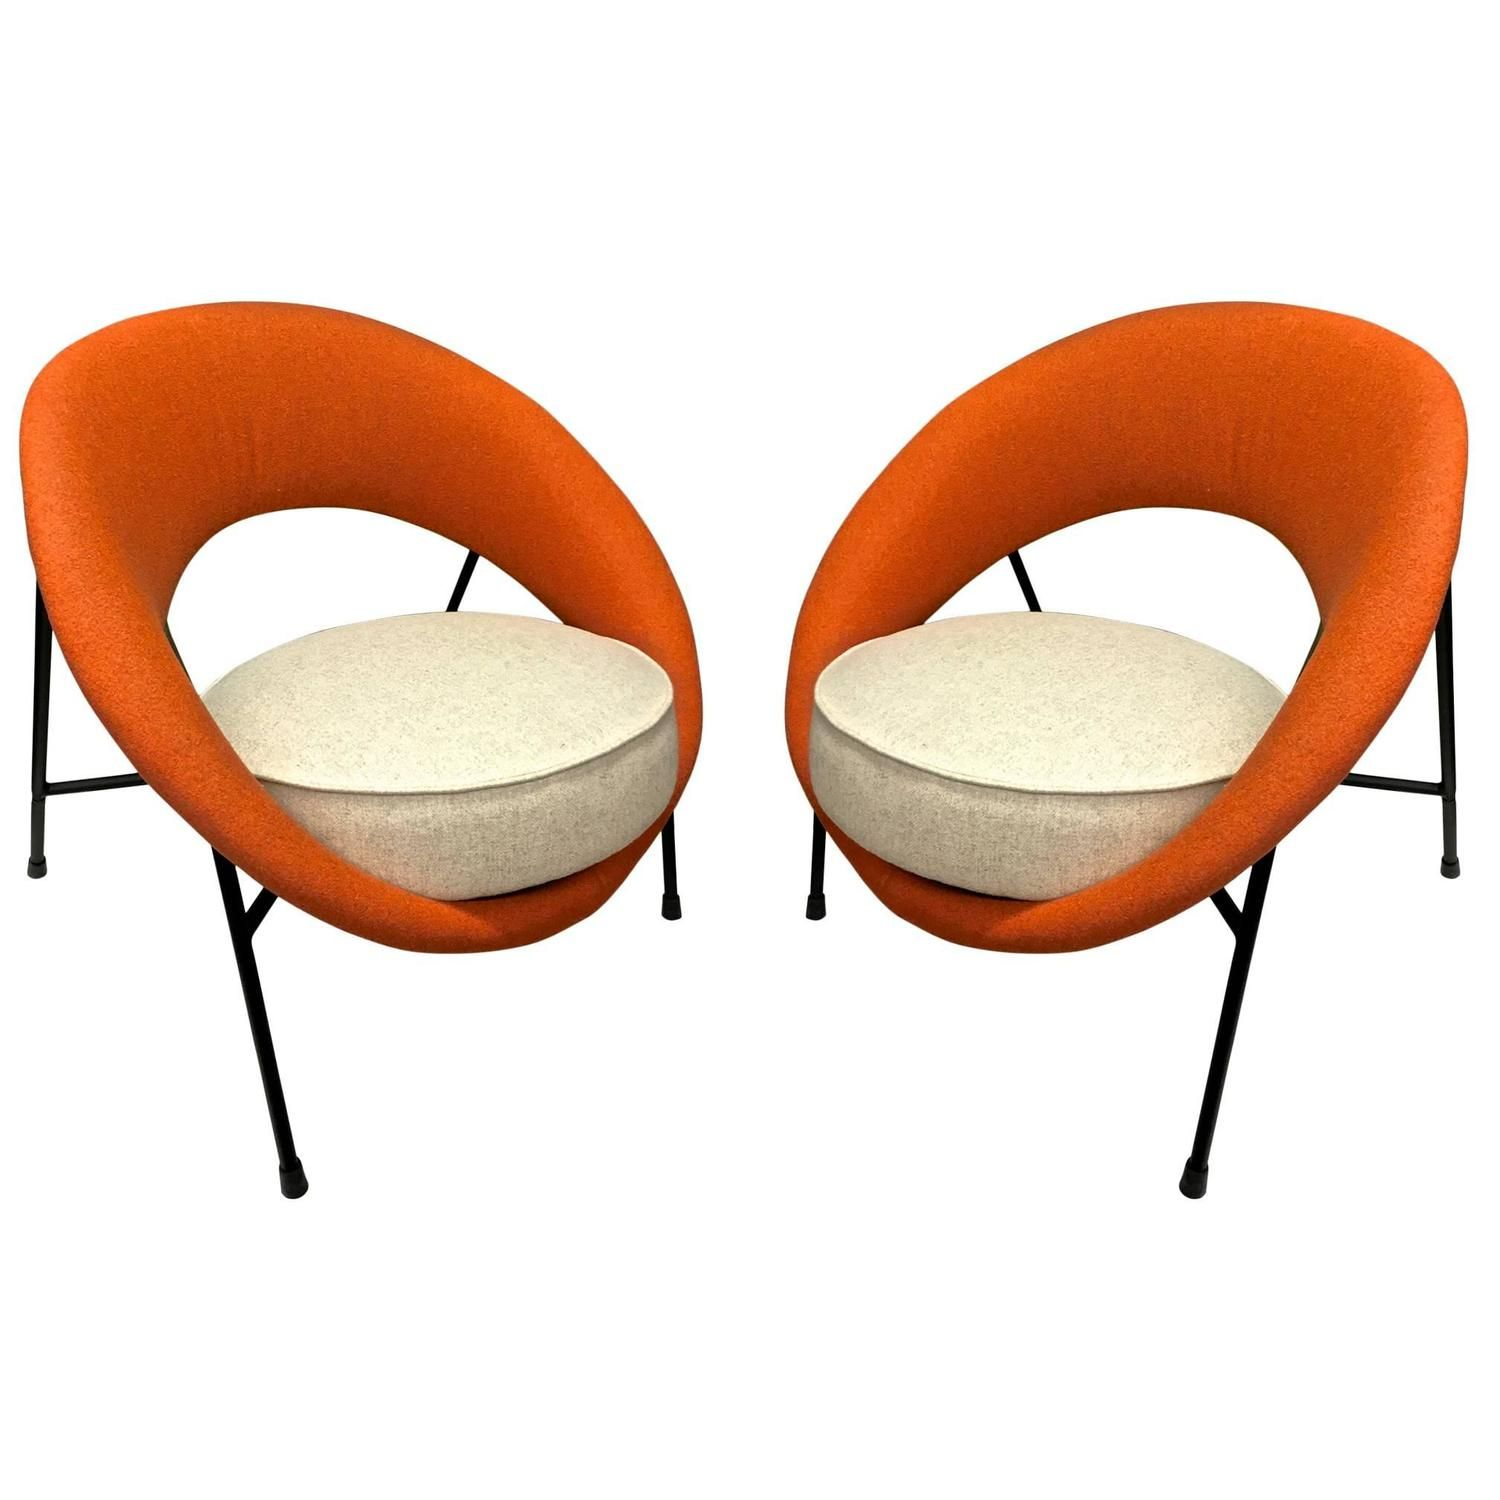 Model Saturne Rare Pair Of Chairs By Genevieve Dangles And Christian Defrance 1stdi Vintage Lounge Chair Mid Century Modern Seating Furniture Design Modern